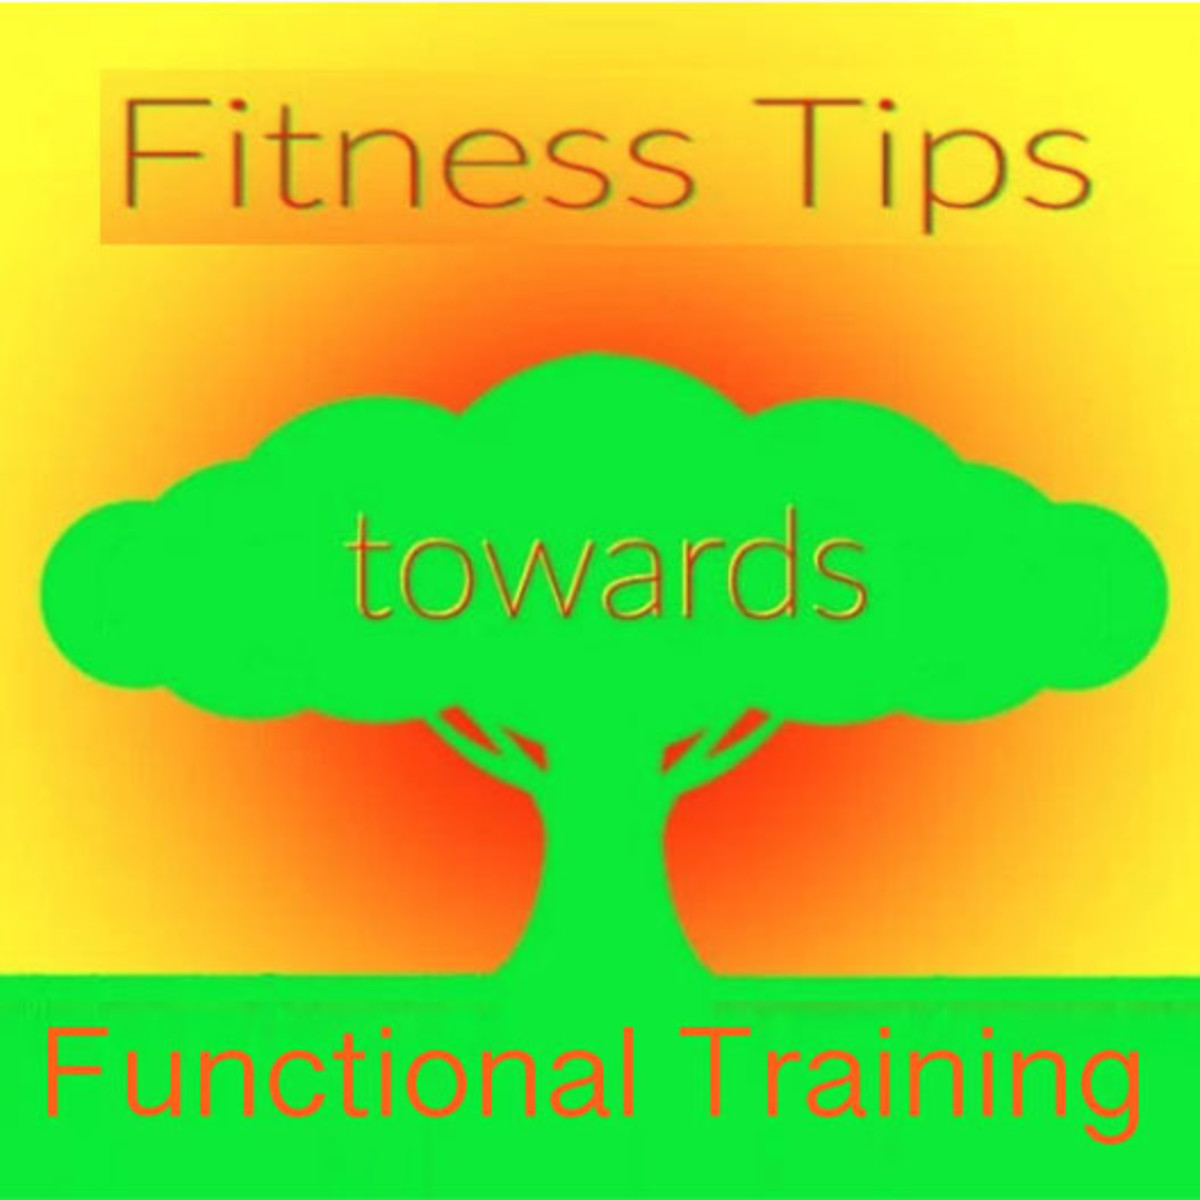 6 Fitness Tips Leading to Functional Training During Daily Activities